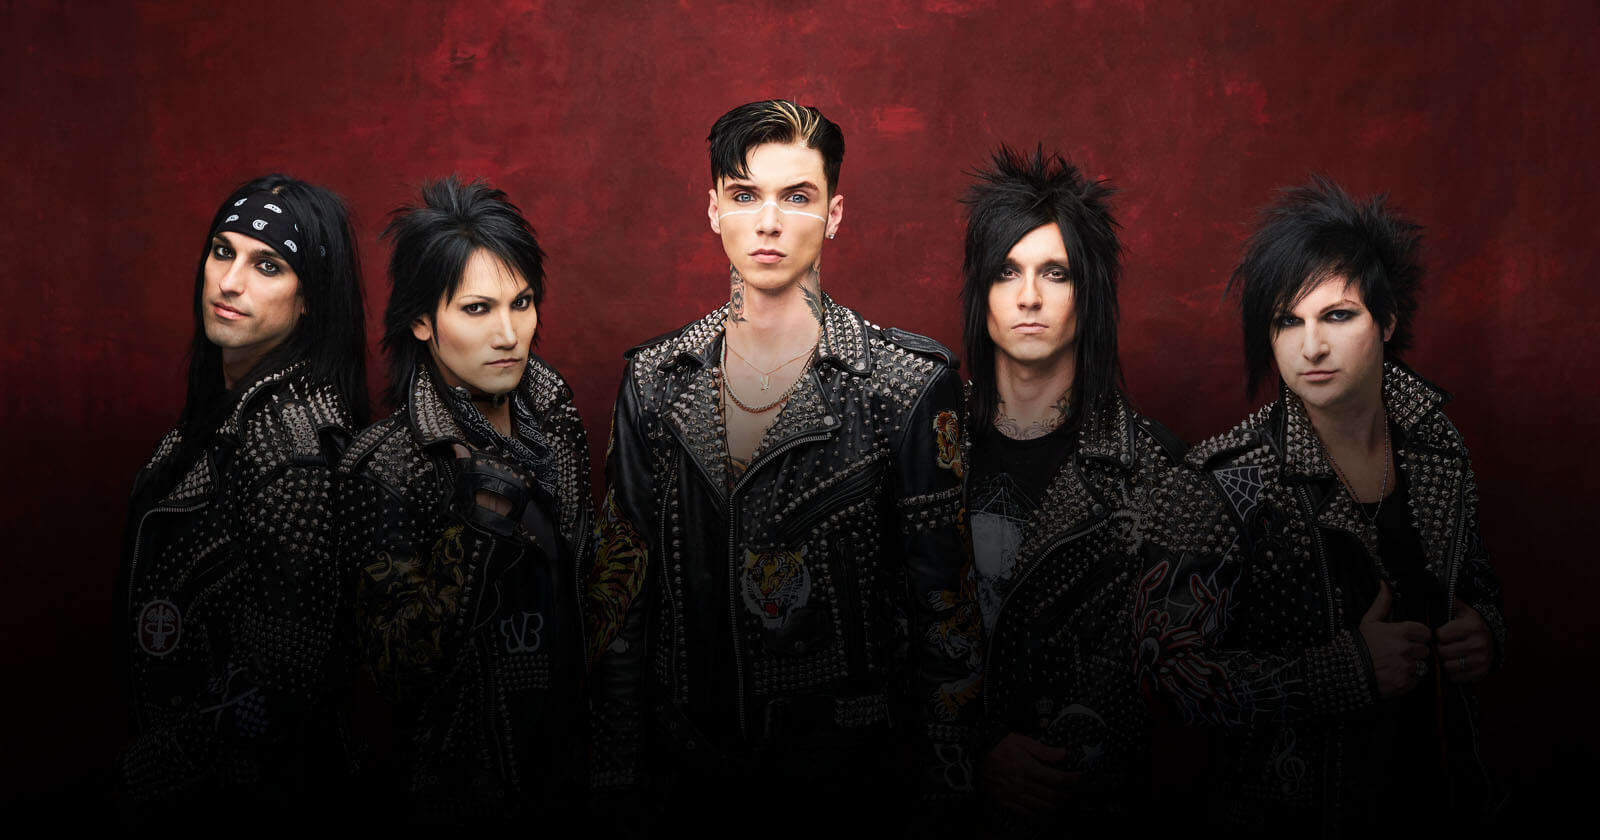 Falling In Reverse Hd Wallpaper Black Veil Brides Official Site